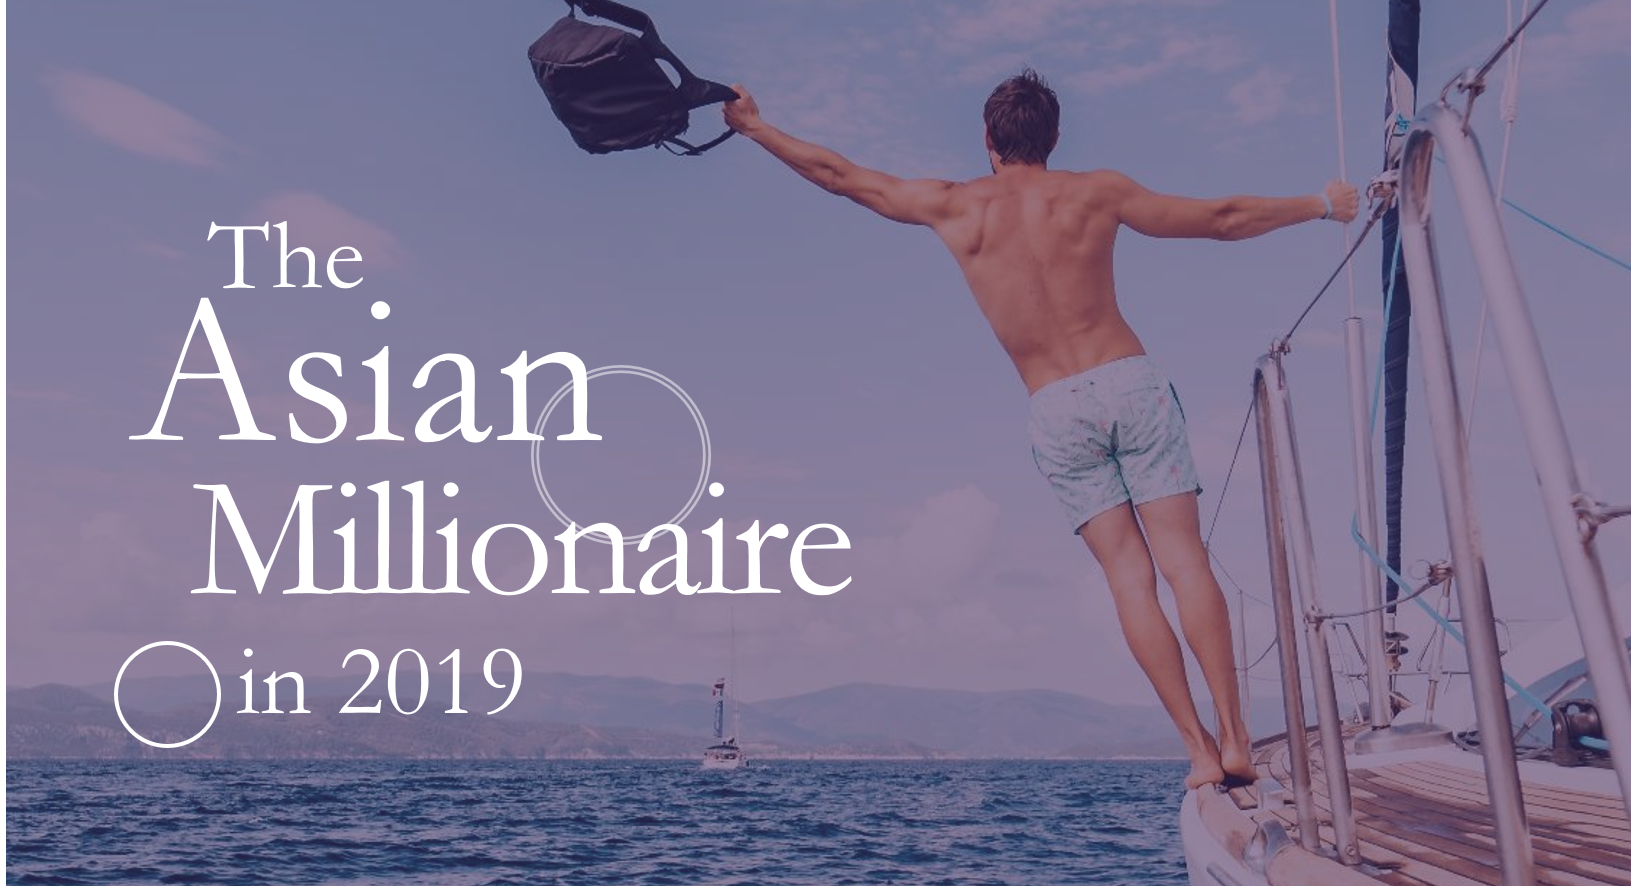 The Asian Millionaire in 2019